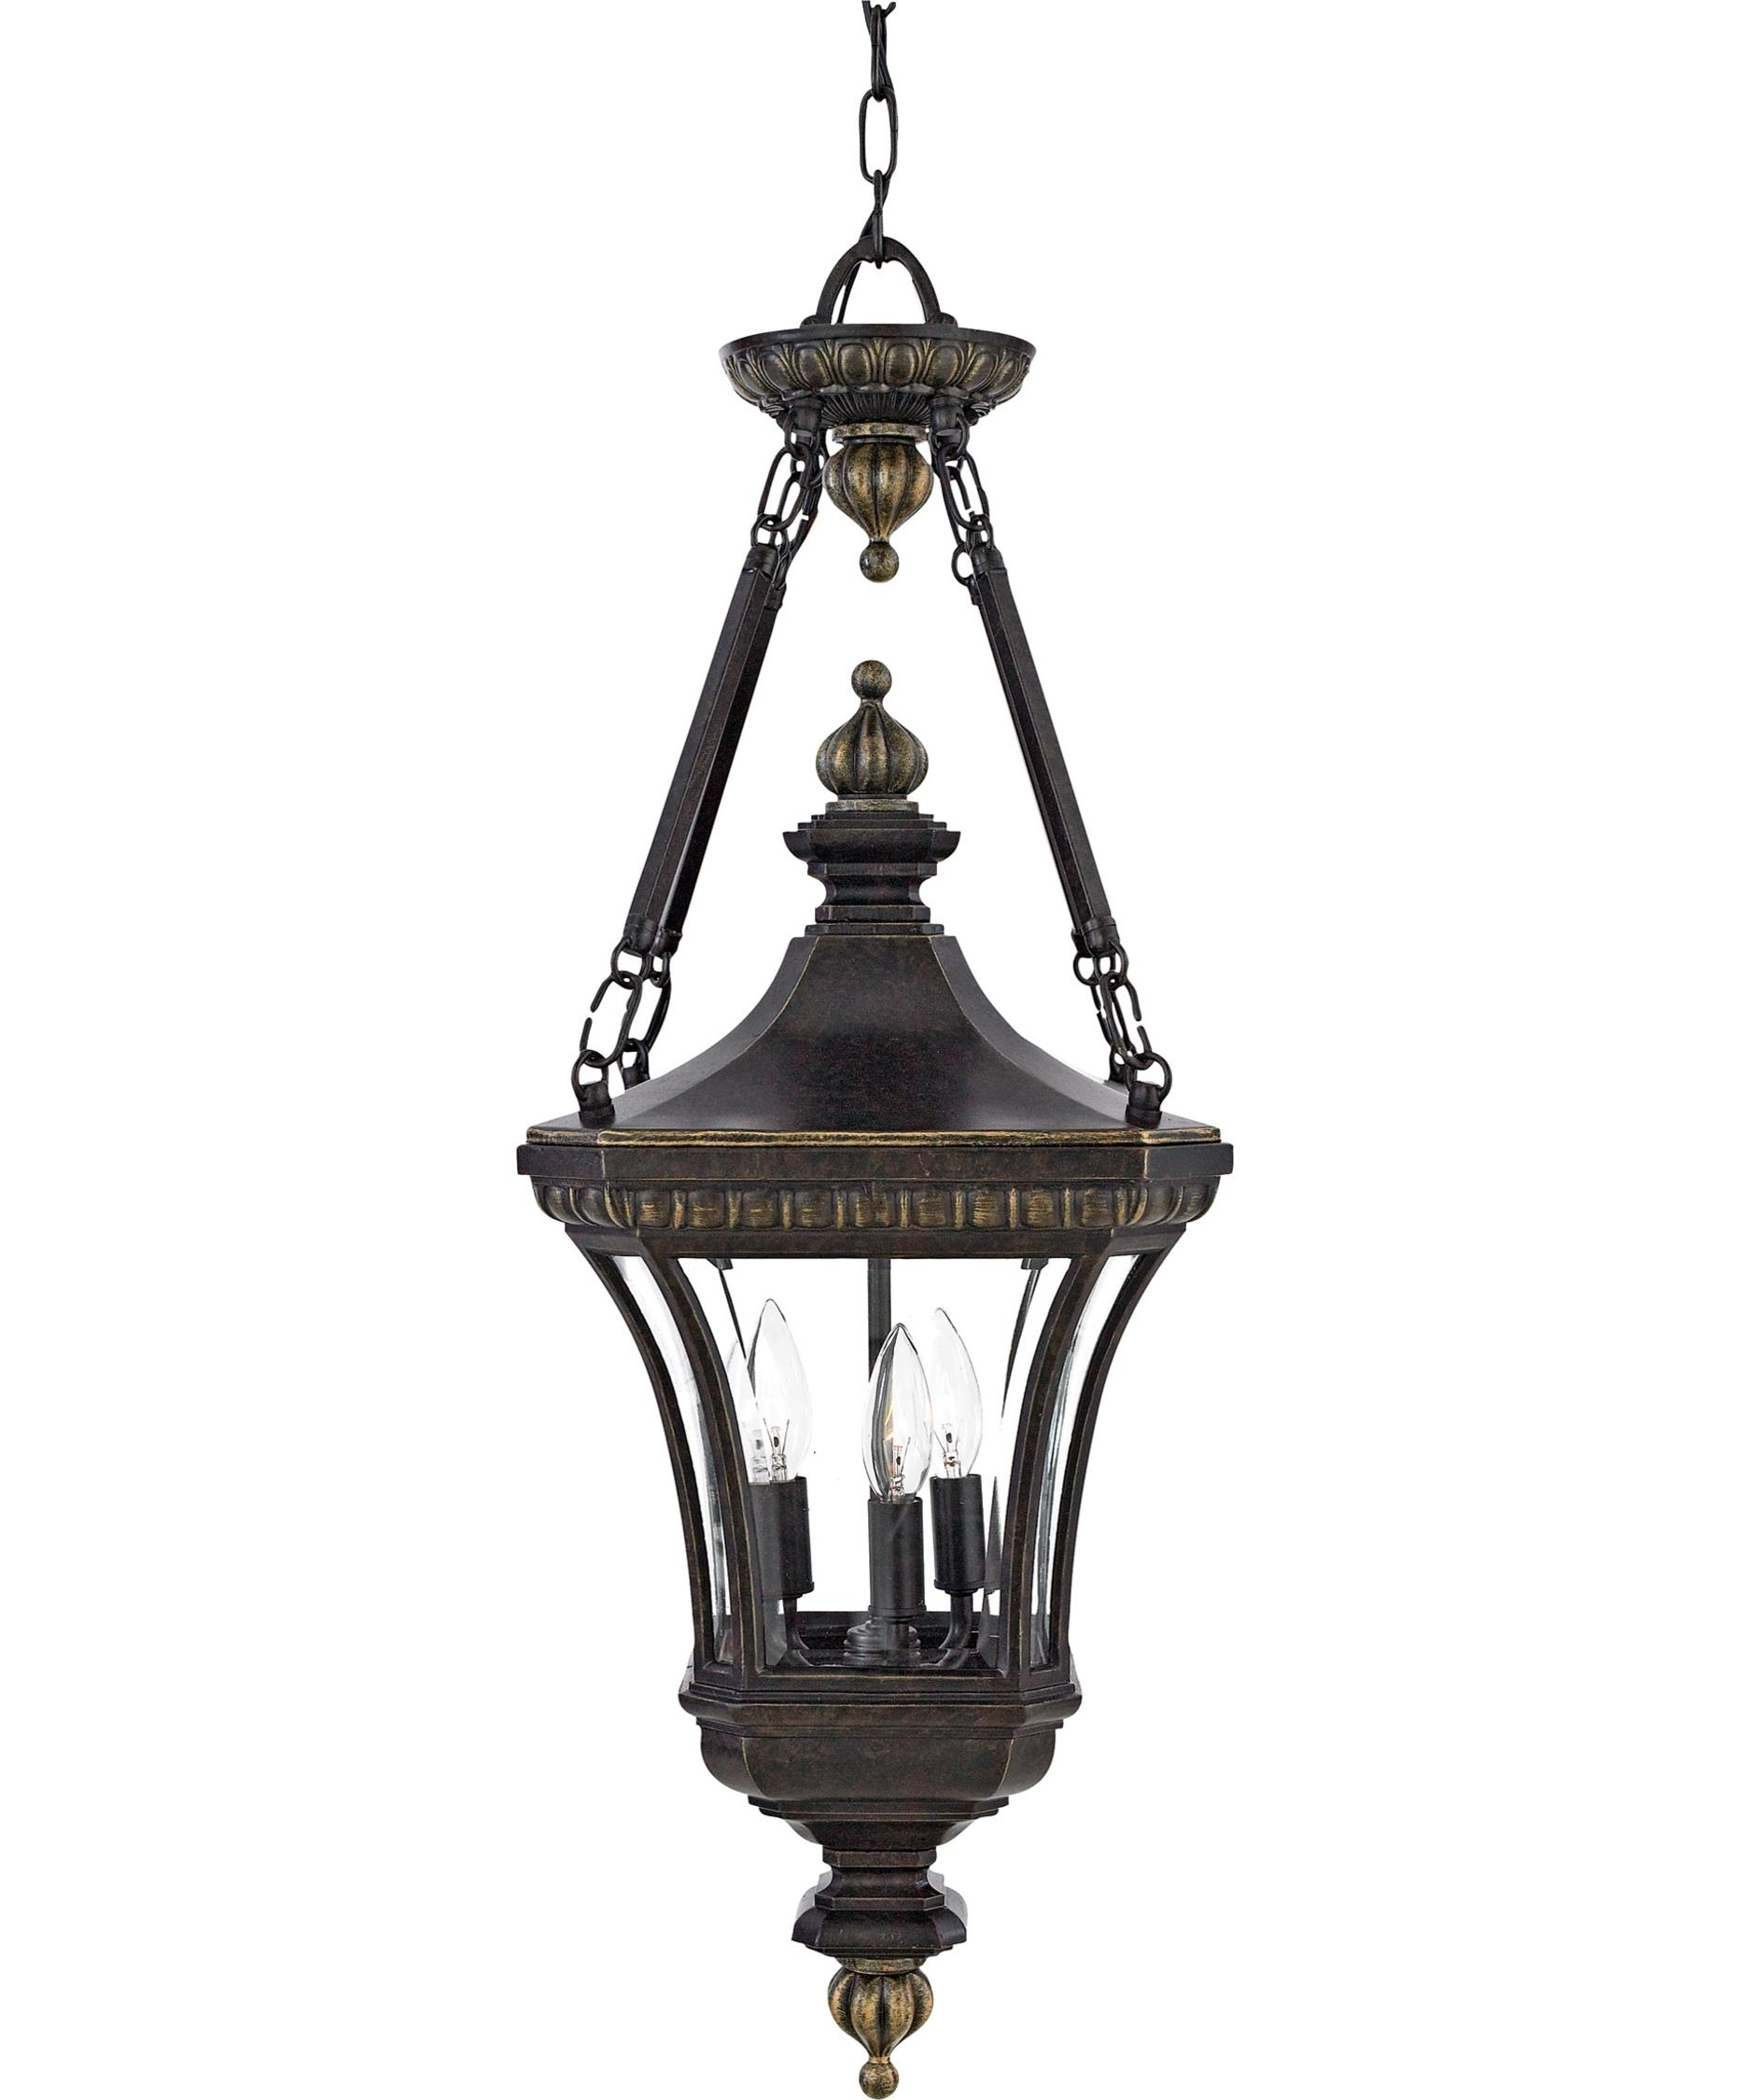 2019 Quoizel De1490 Devon 11 Inch Wide 3 Light Outdoor Hanging Lantern In Quoizel Outdoor Hanging Lights (View 1 of 20)